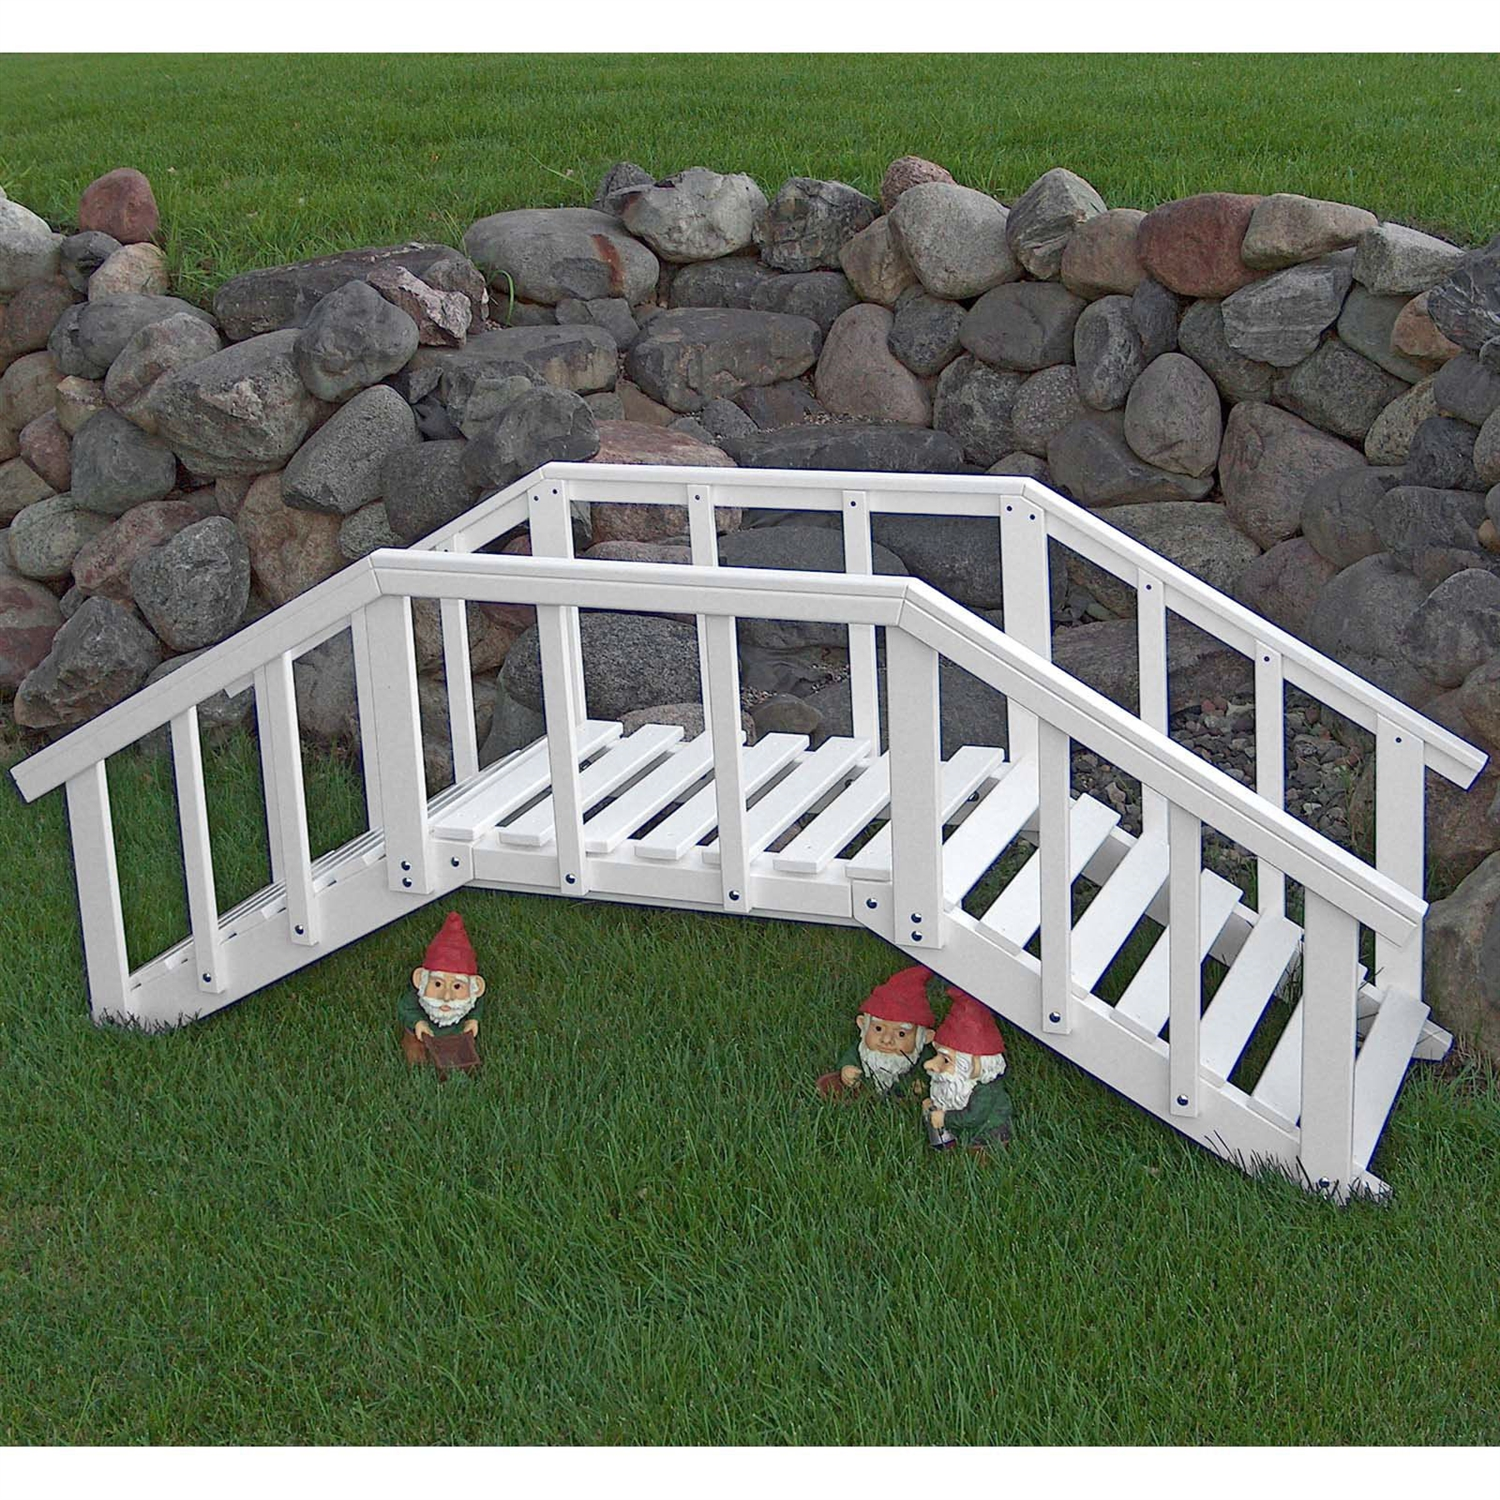 Decorative 6.5-ft White Wood Garden Bridge with Rails in Durable ...